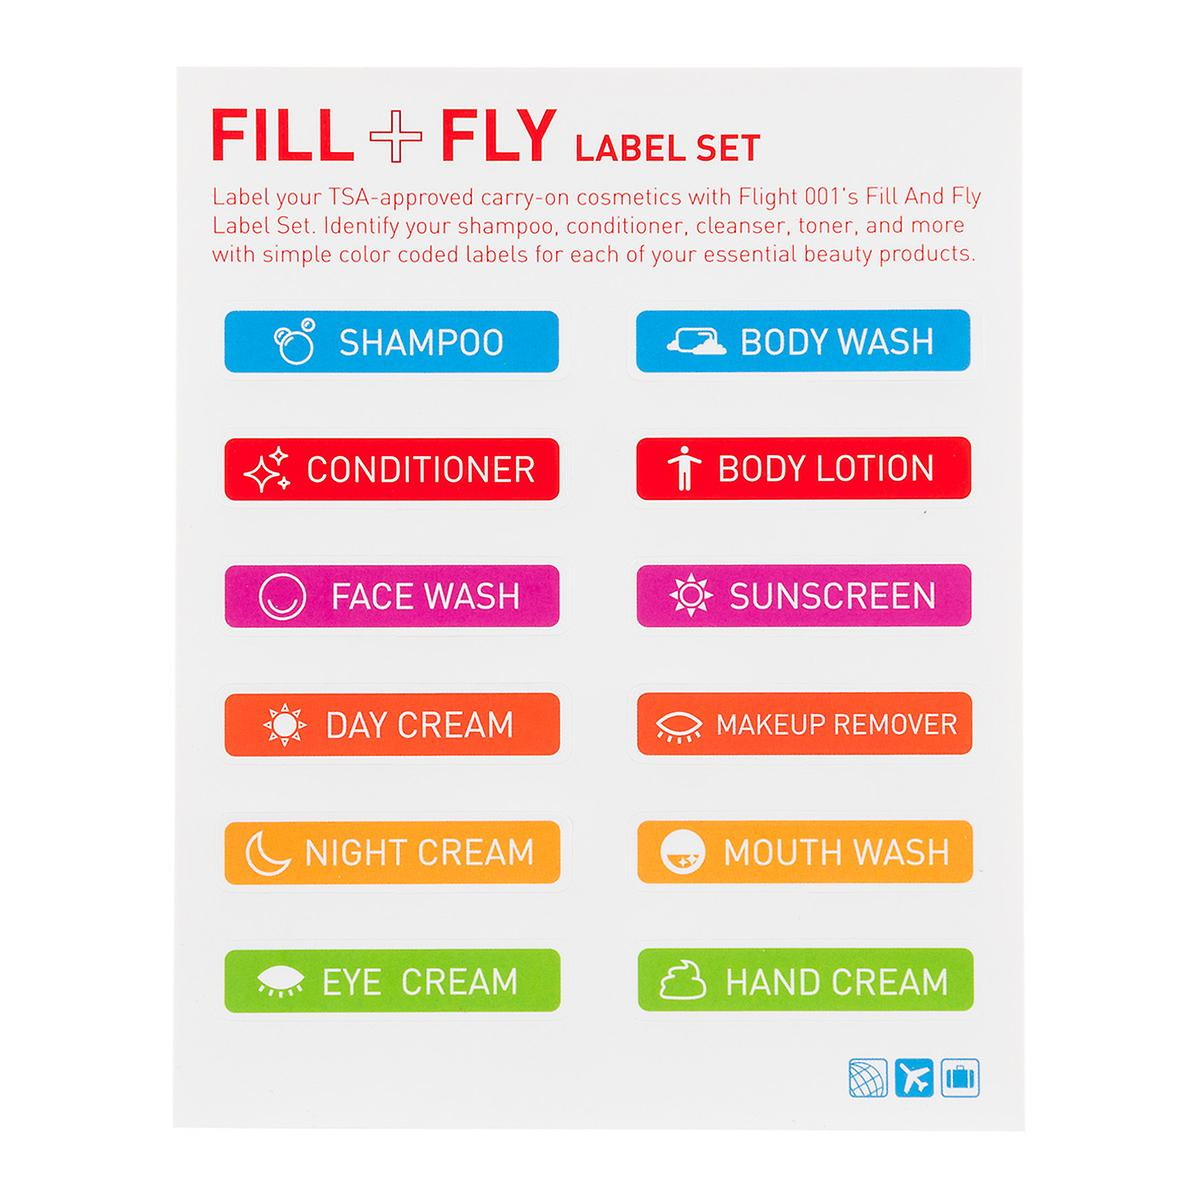 Flight 001 Fill & Fly Label Set